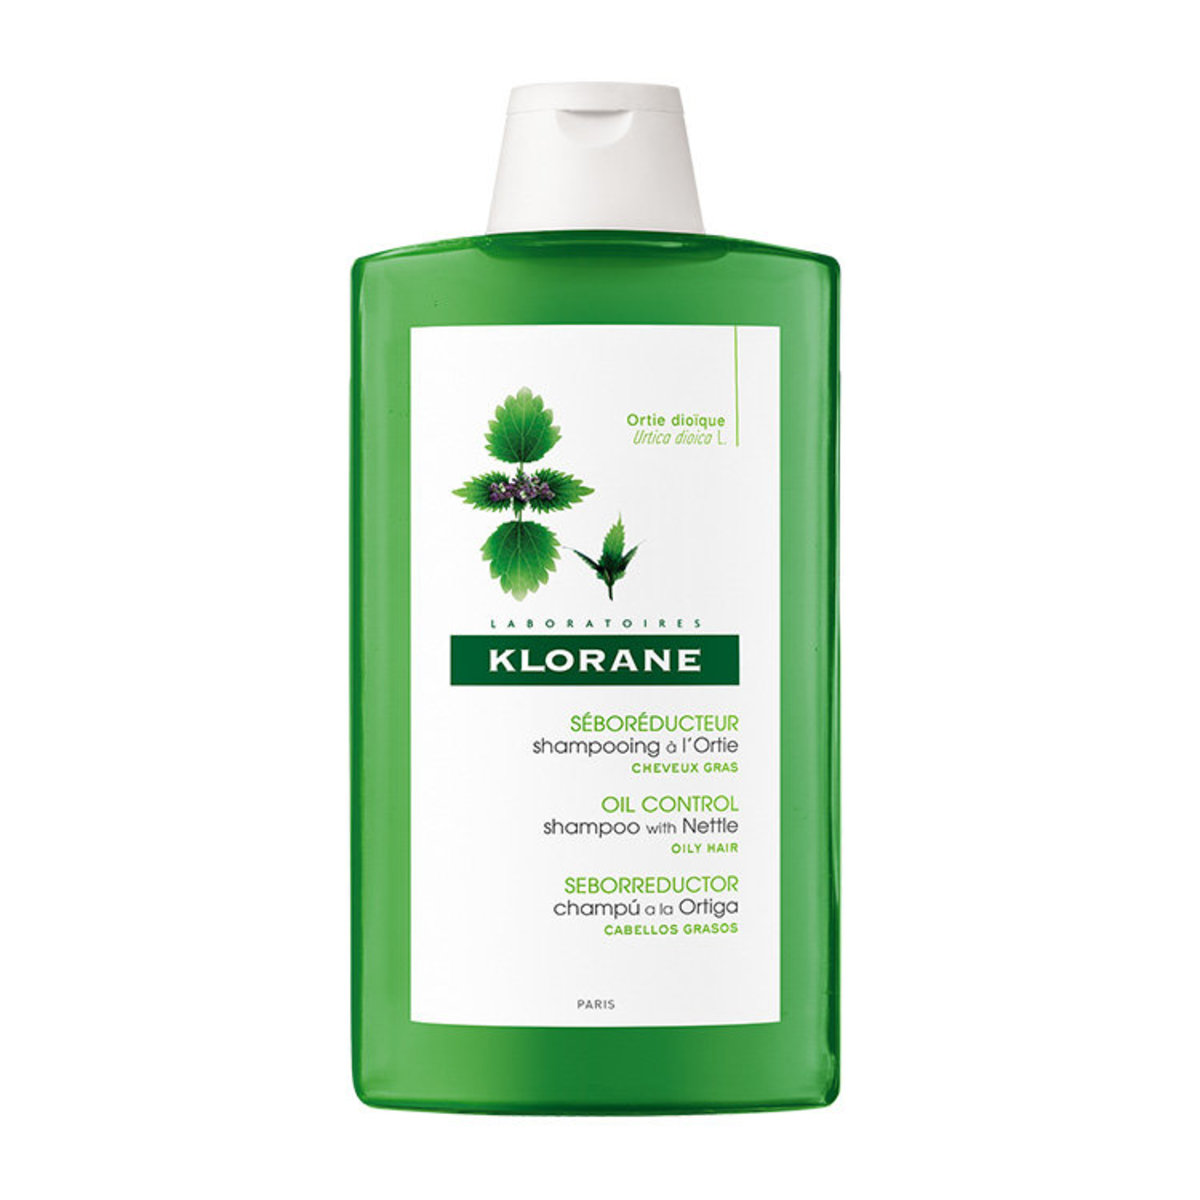 Shampoo  with Nettle 400ml